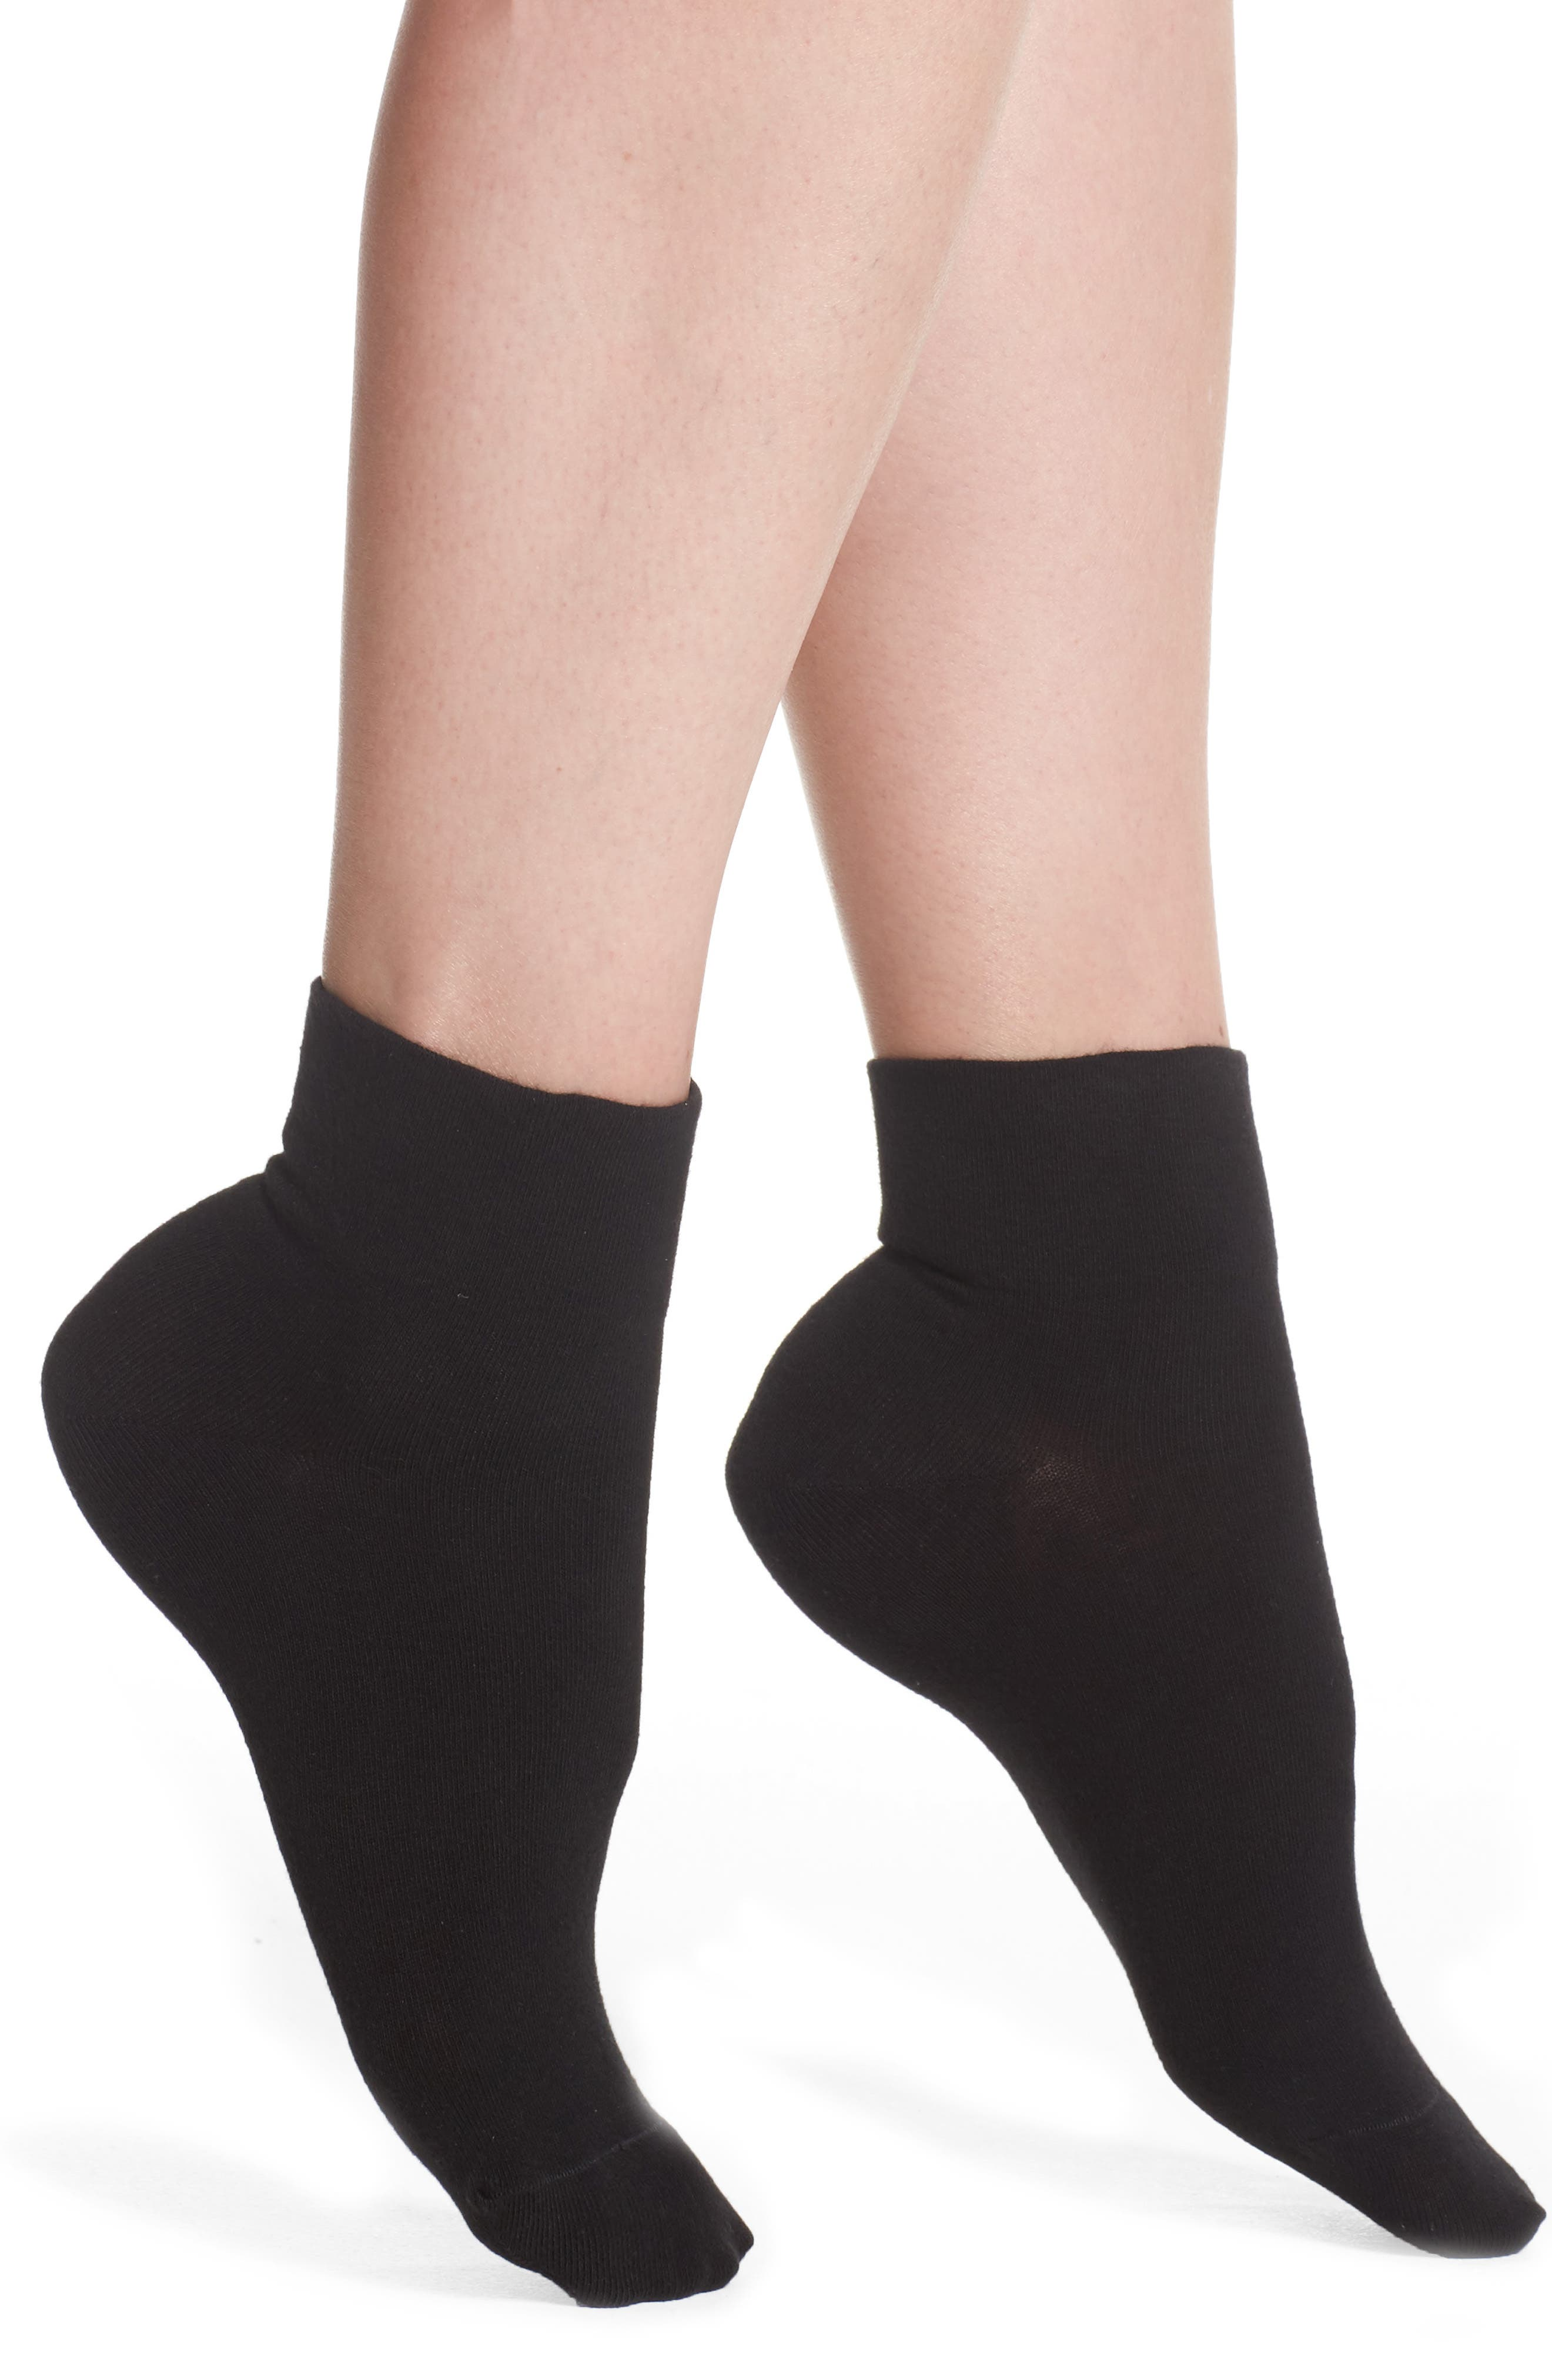 Everyday Ankle Socks,                         Main,                         color, 001